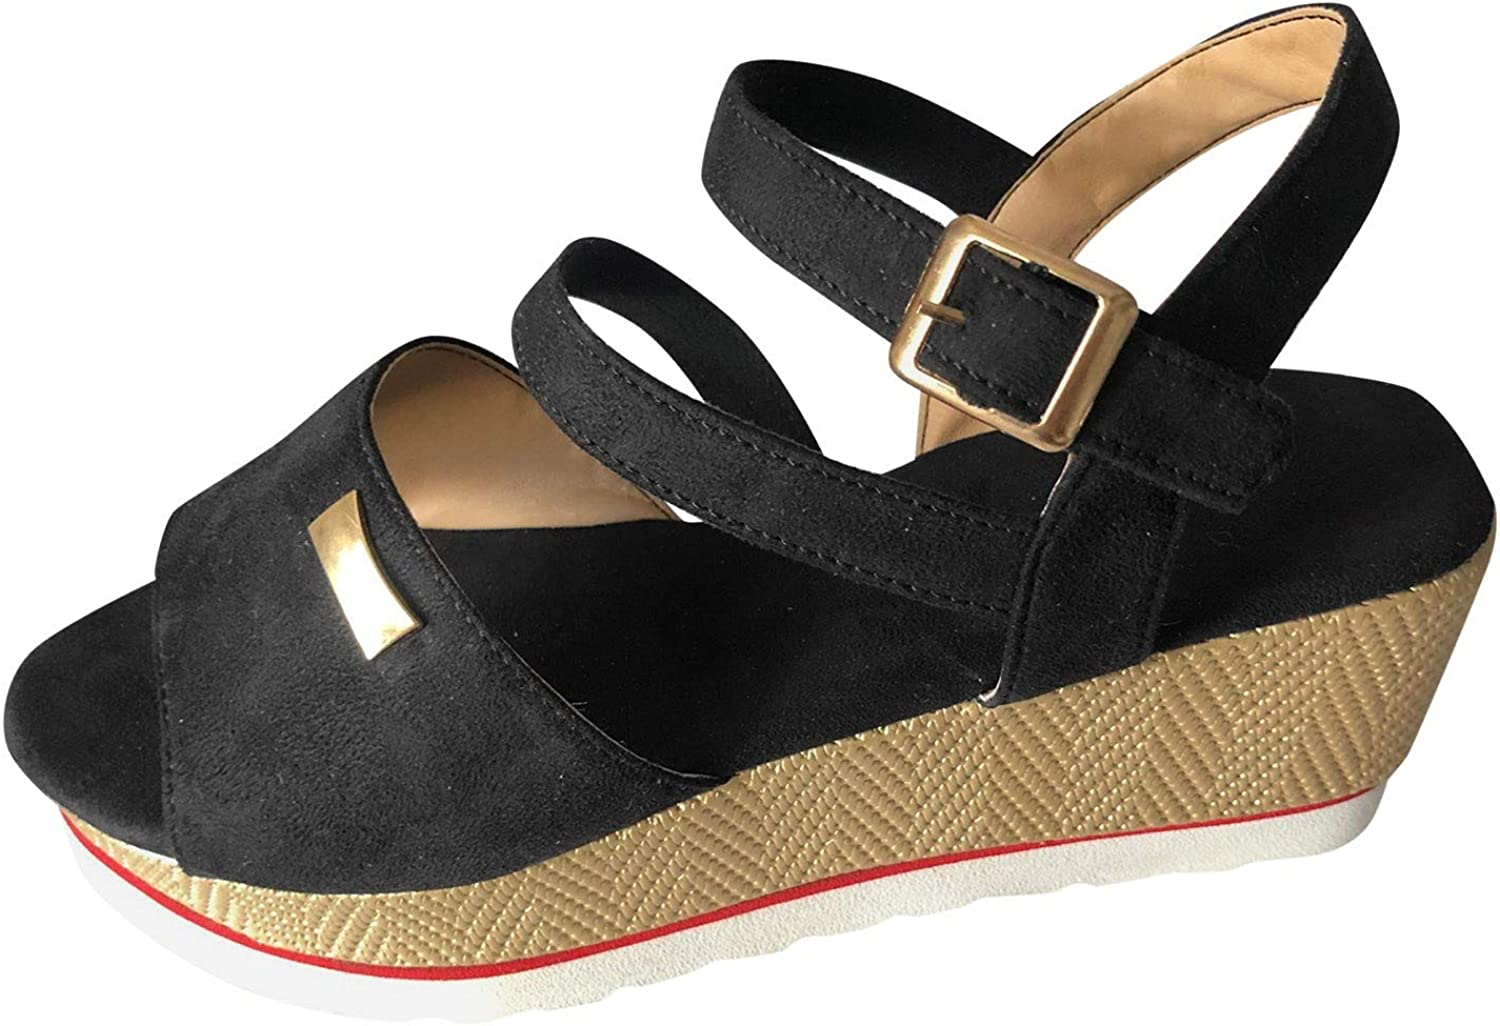 Fashion Women's Casual Shoes Breathable Slip-on Outdoor Leisure Wedges Sandals